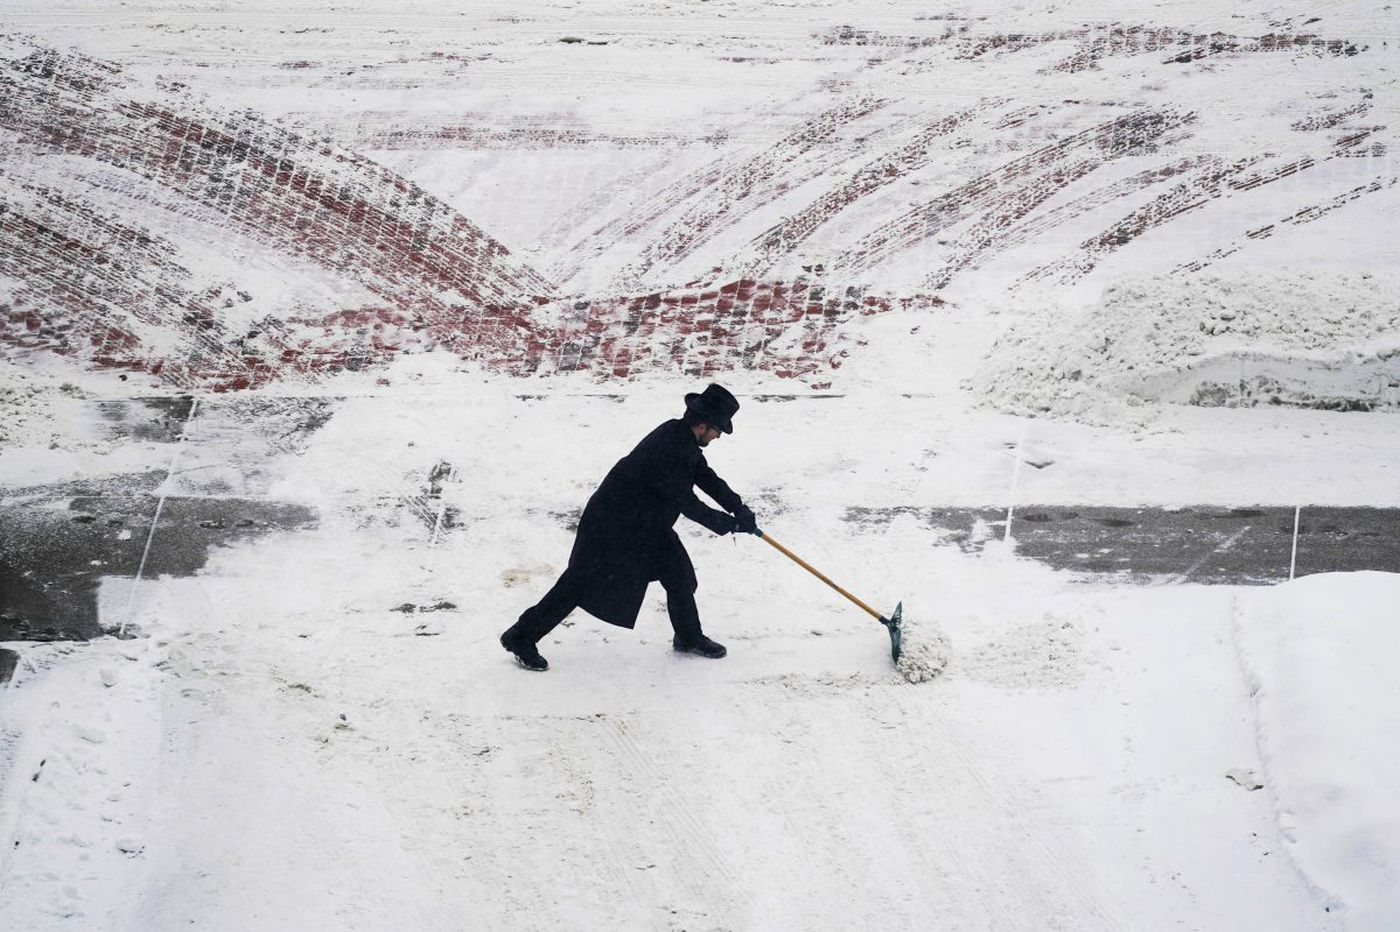 Coldest April in 20 years across the United States, feds say